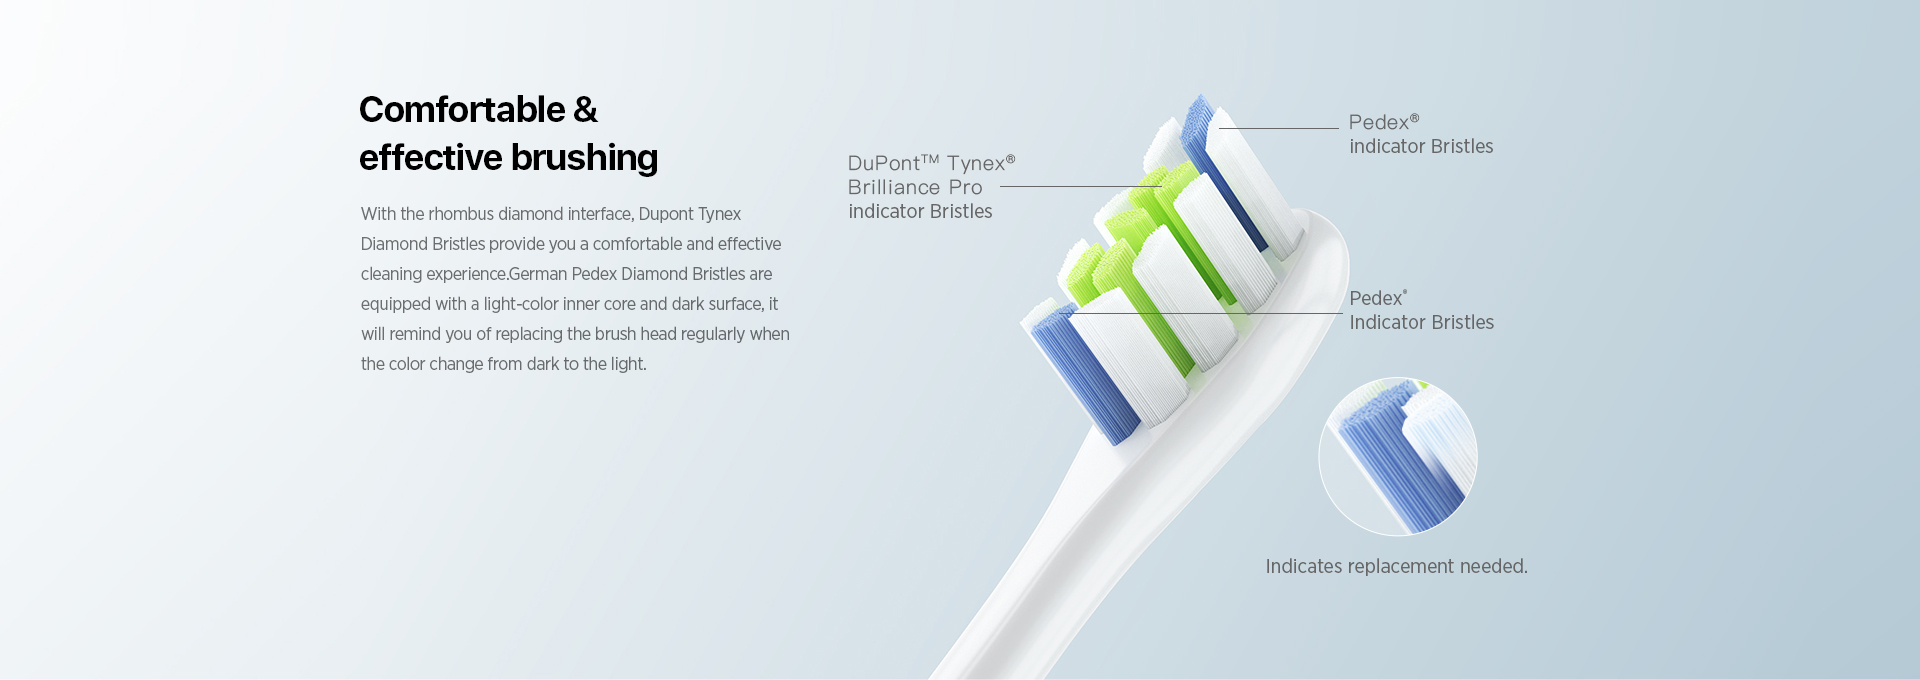 oclean whitening &cleaning toothbrush head